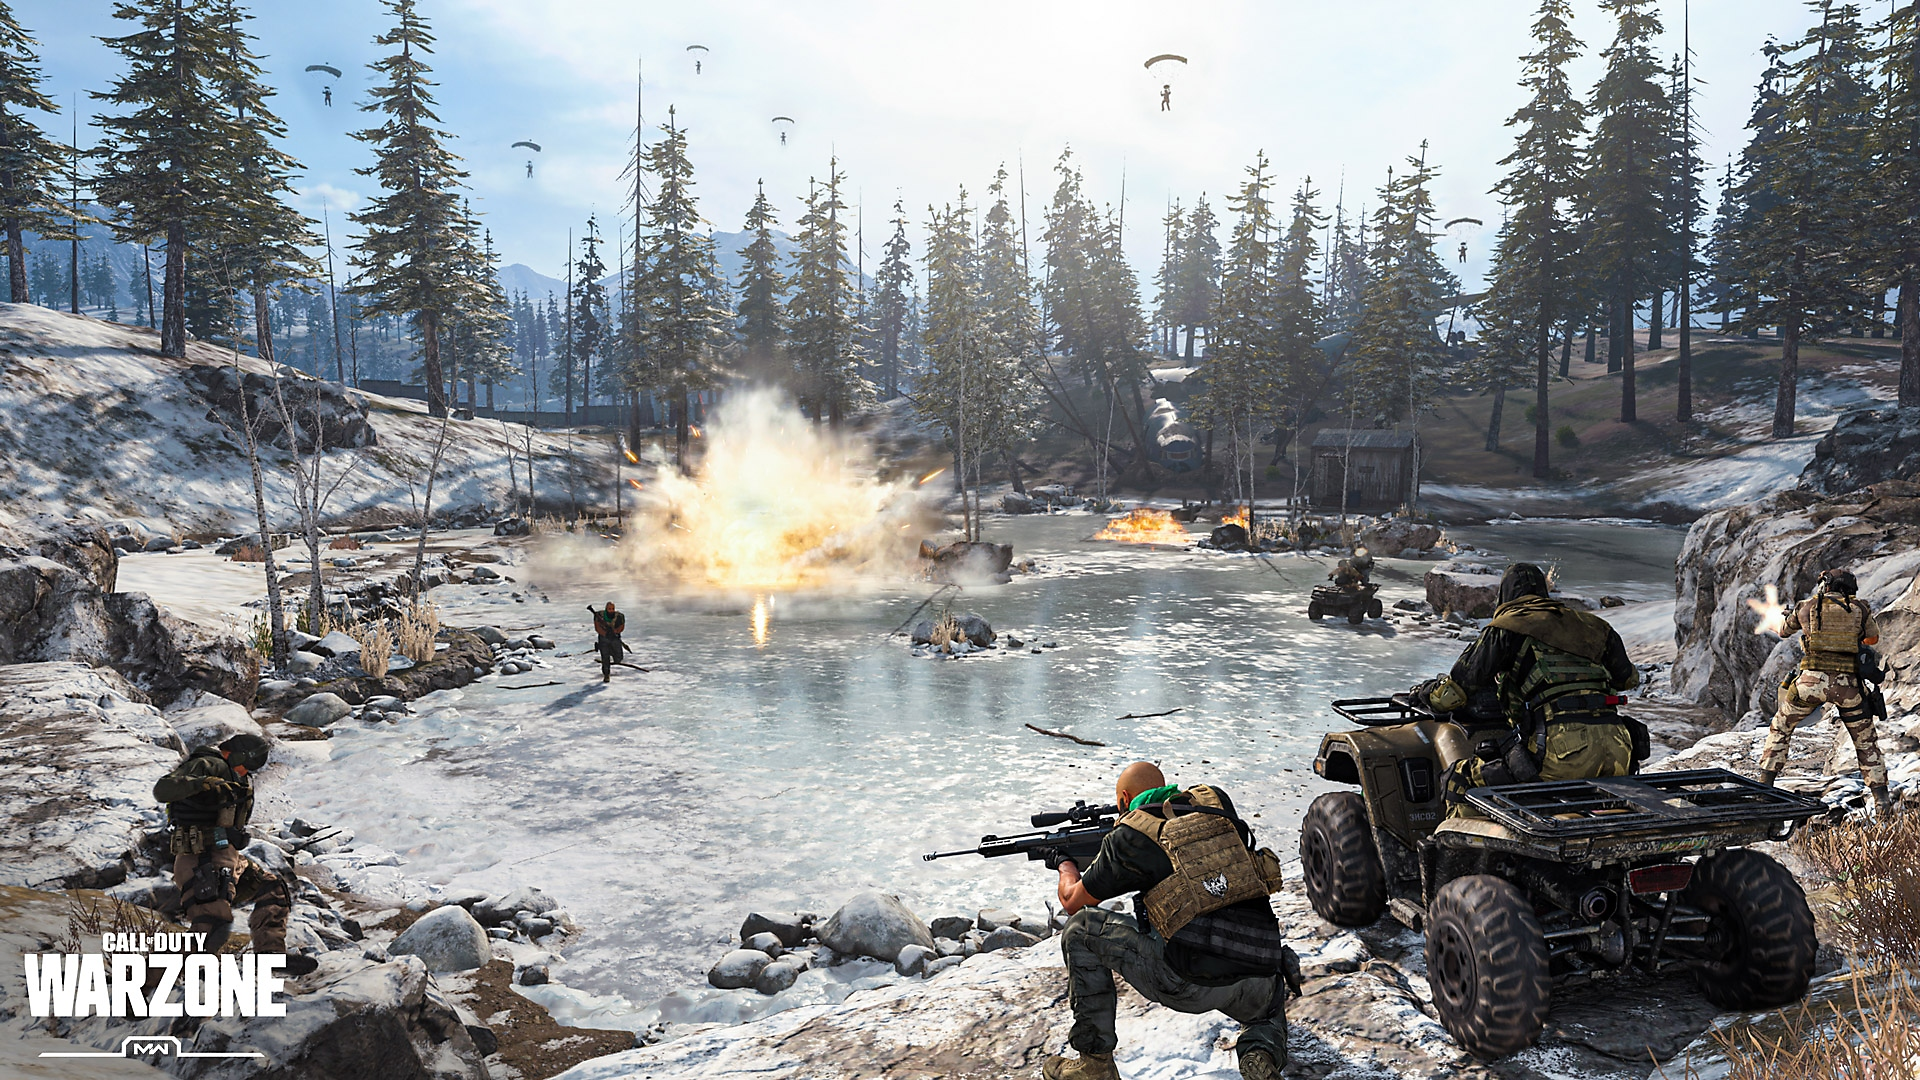 Call of Duty Warzone screenshot